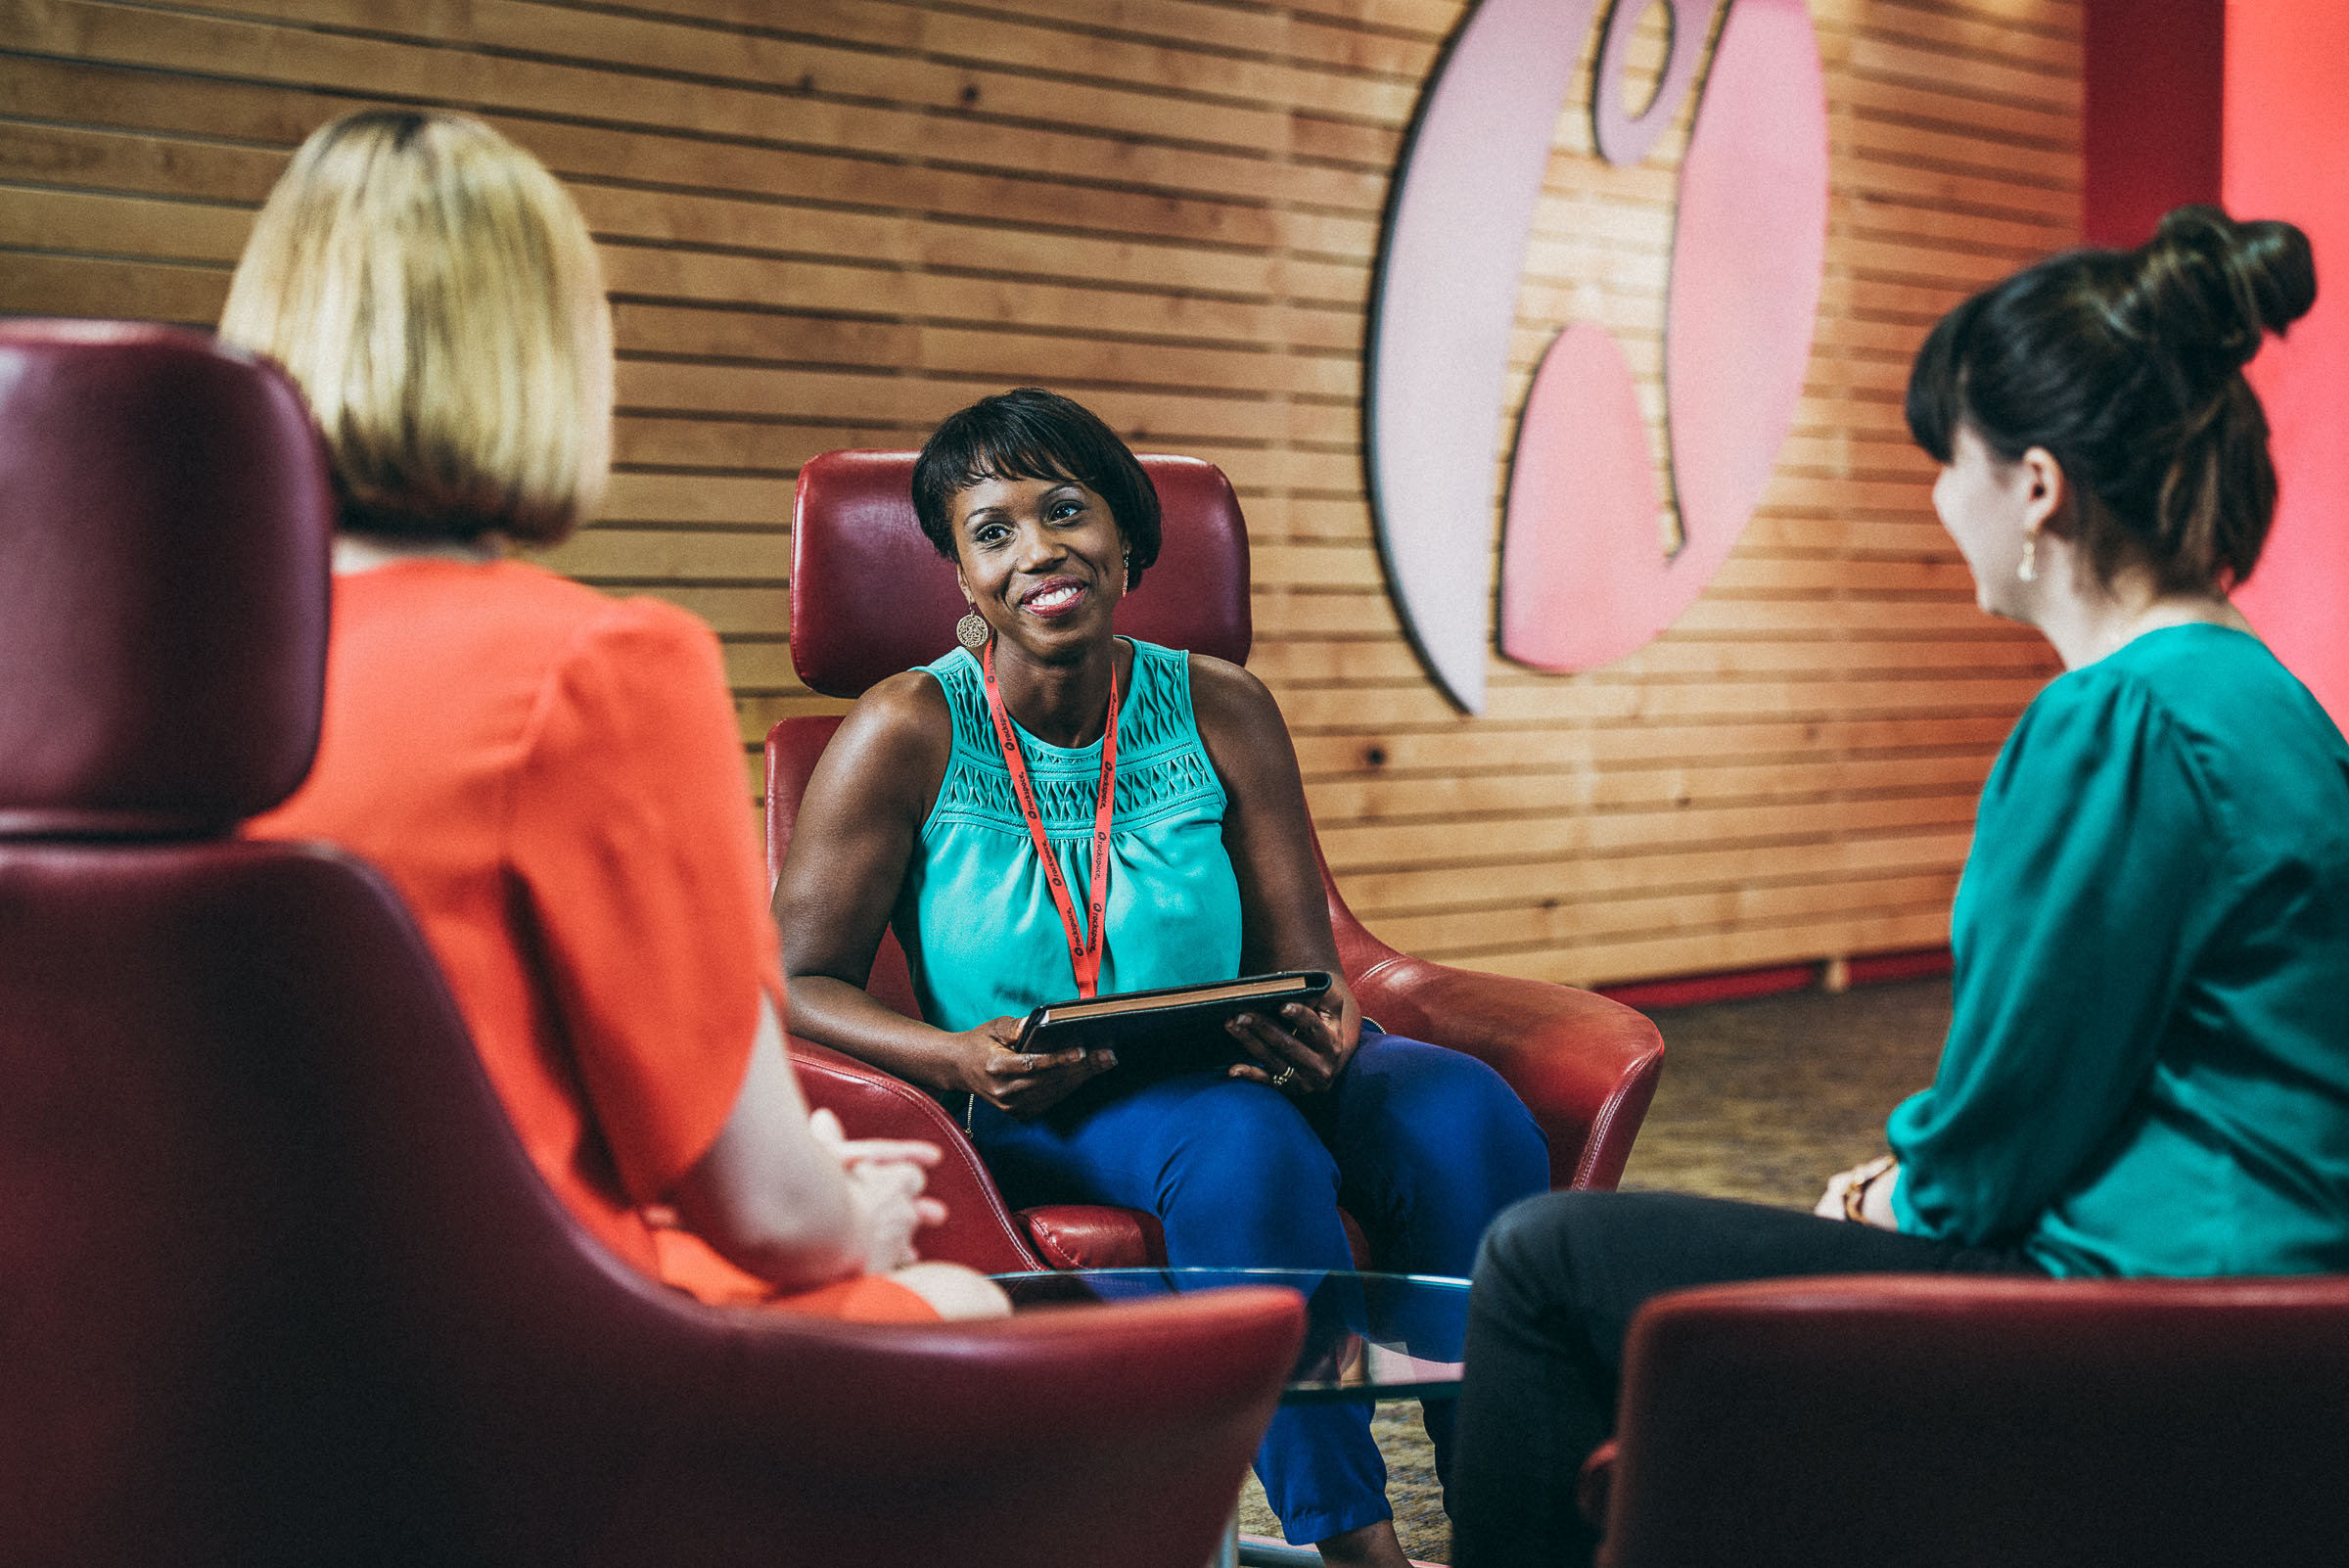 Business lifestyle photography -  three women talk in a colorful corporate environment.